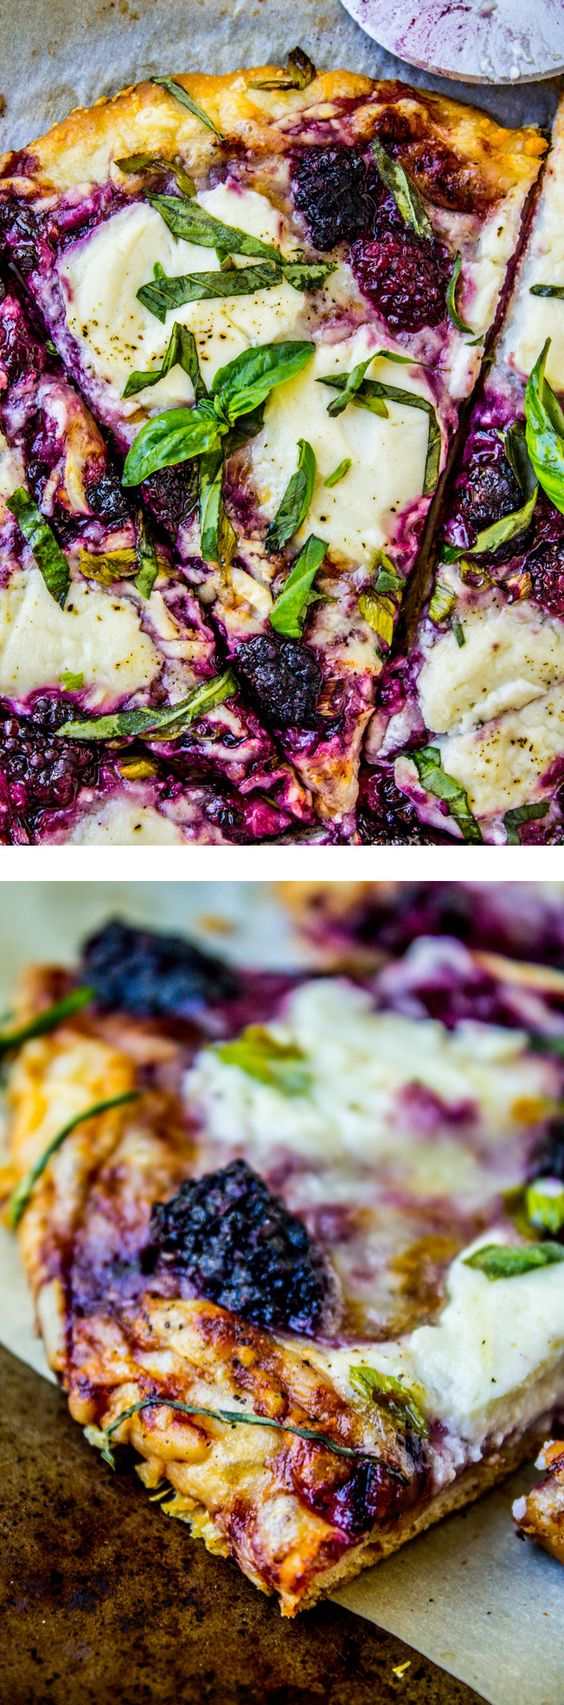 Blackberry Ricotta Pizza with Basil from The Food Charlatan // The perfect EASY summer pizza!: